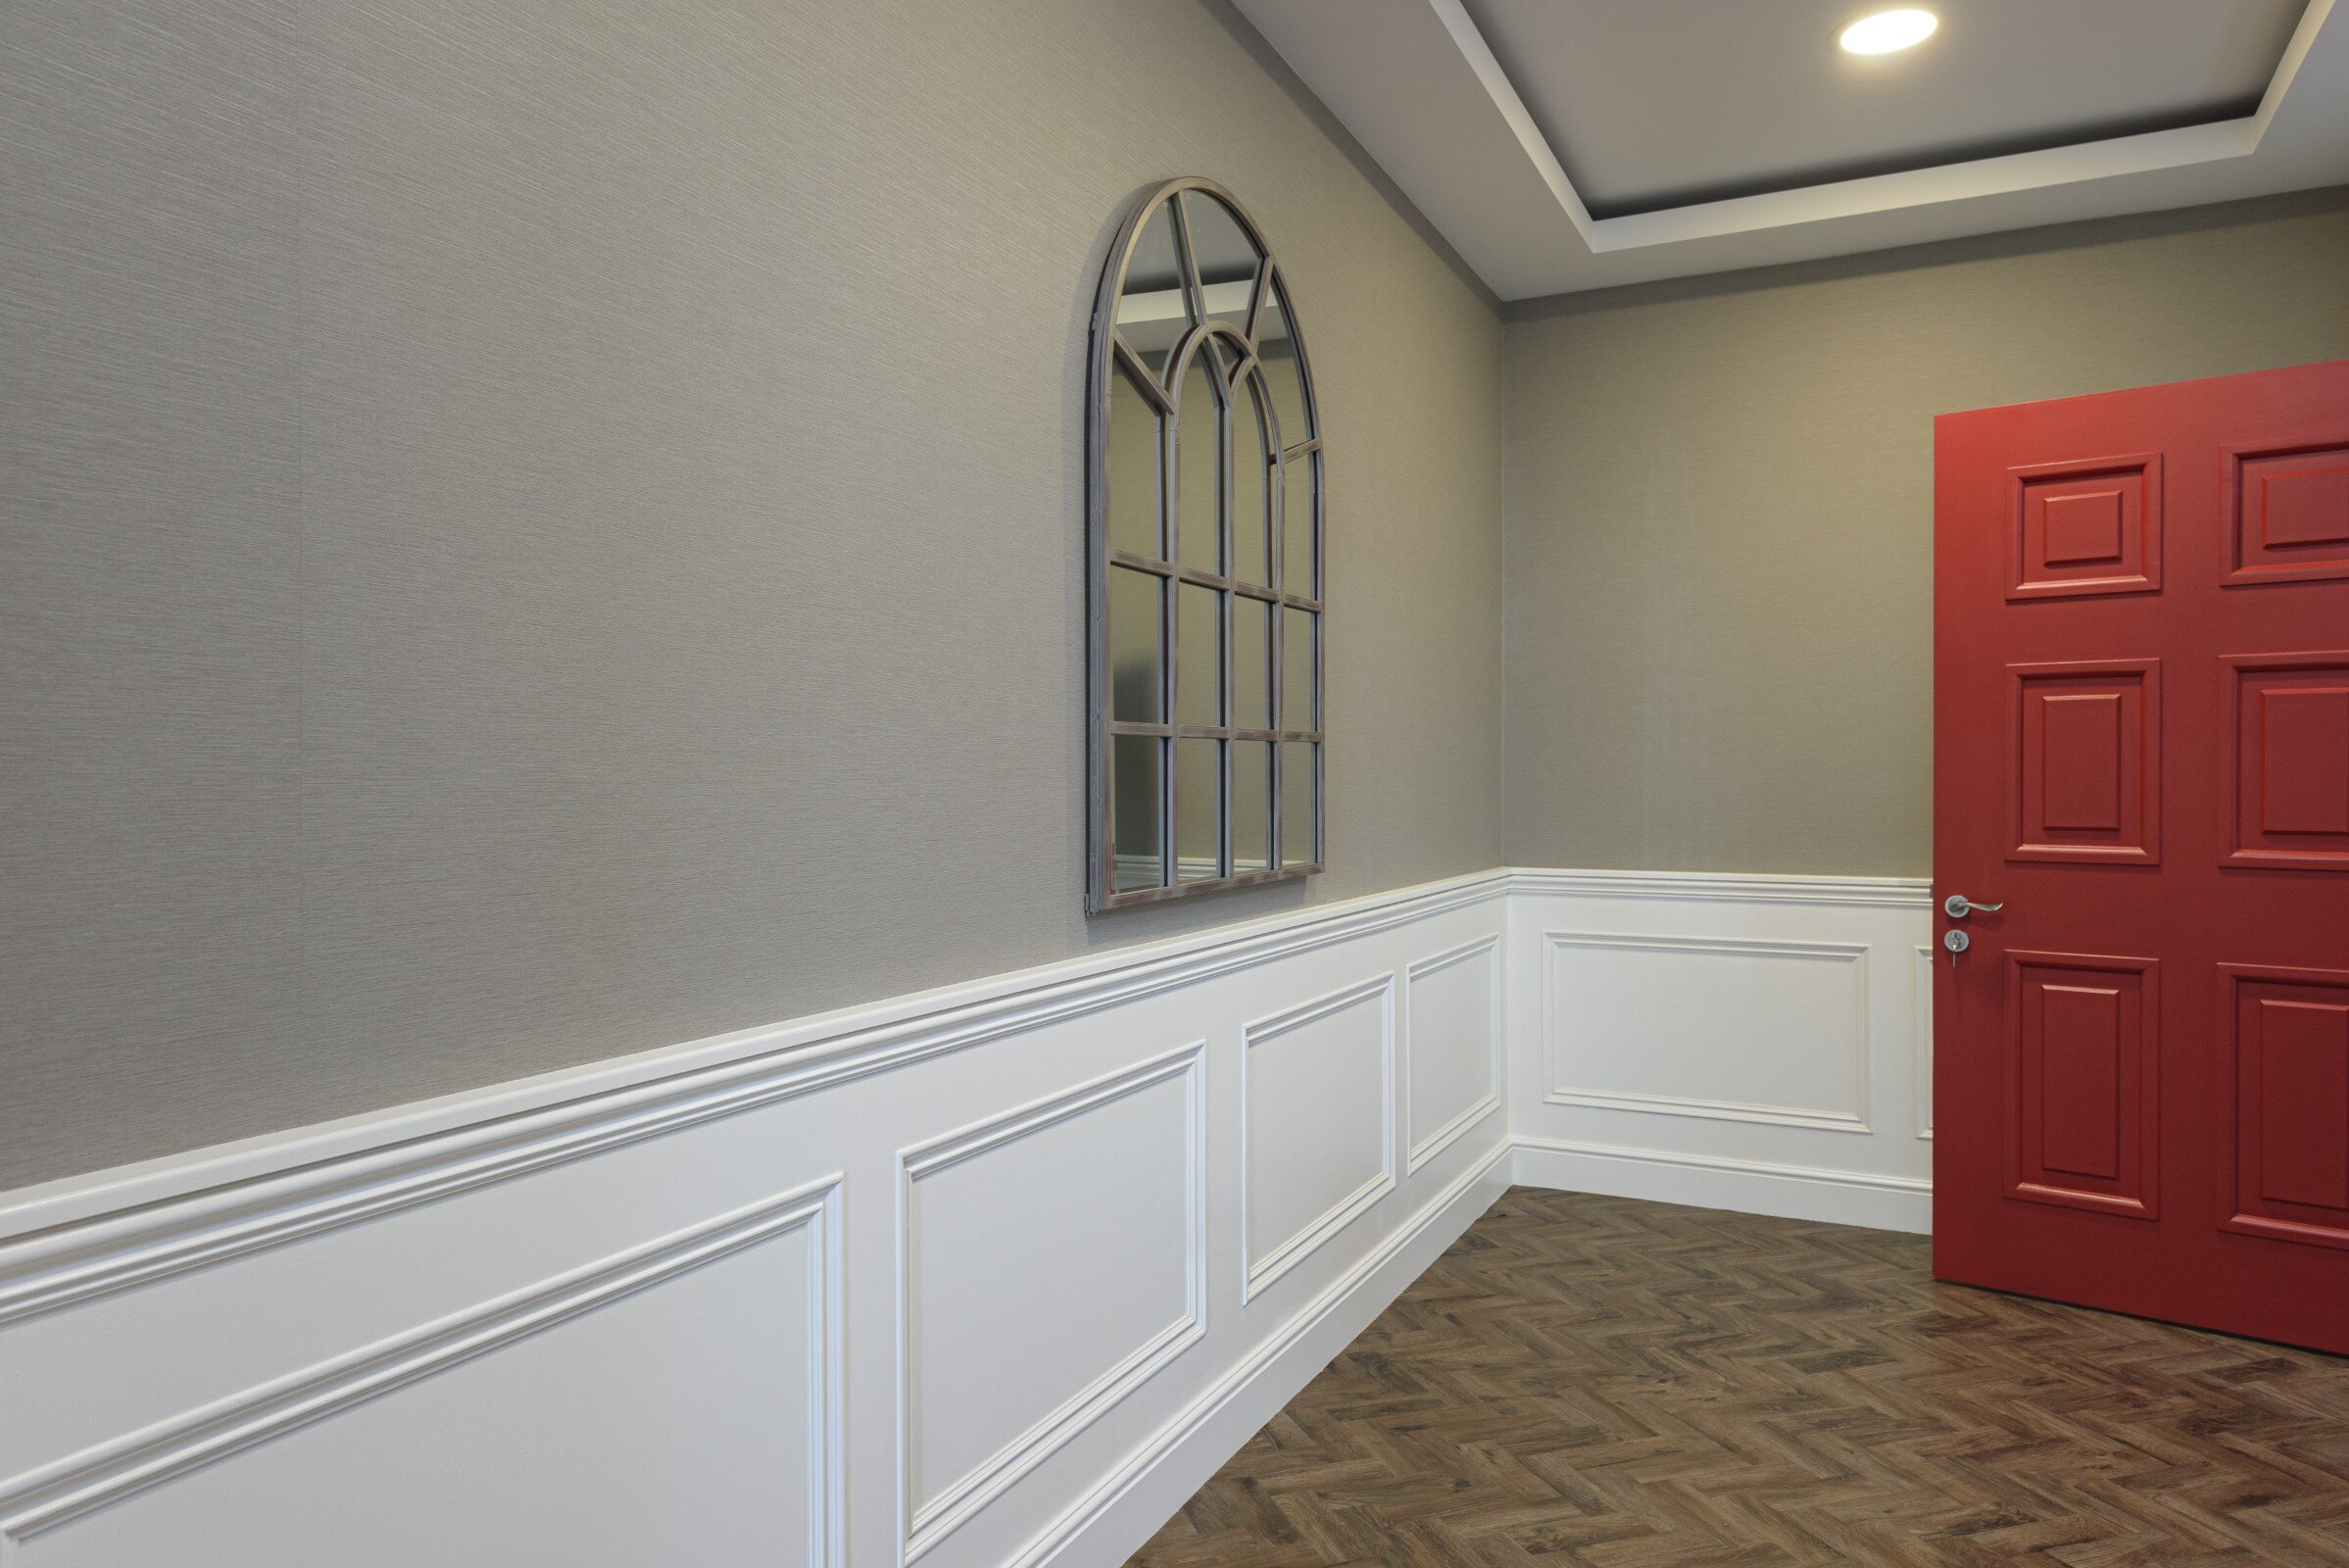 wainscoting wall panelling lucan dublin 50hz (5) (X-Large).jpg